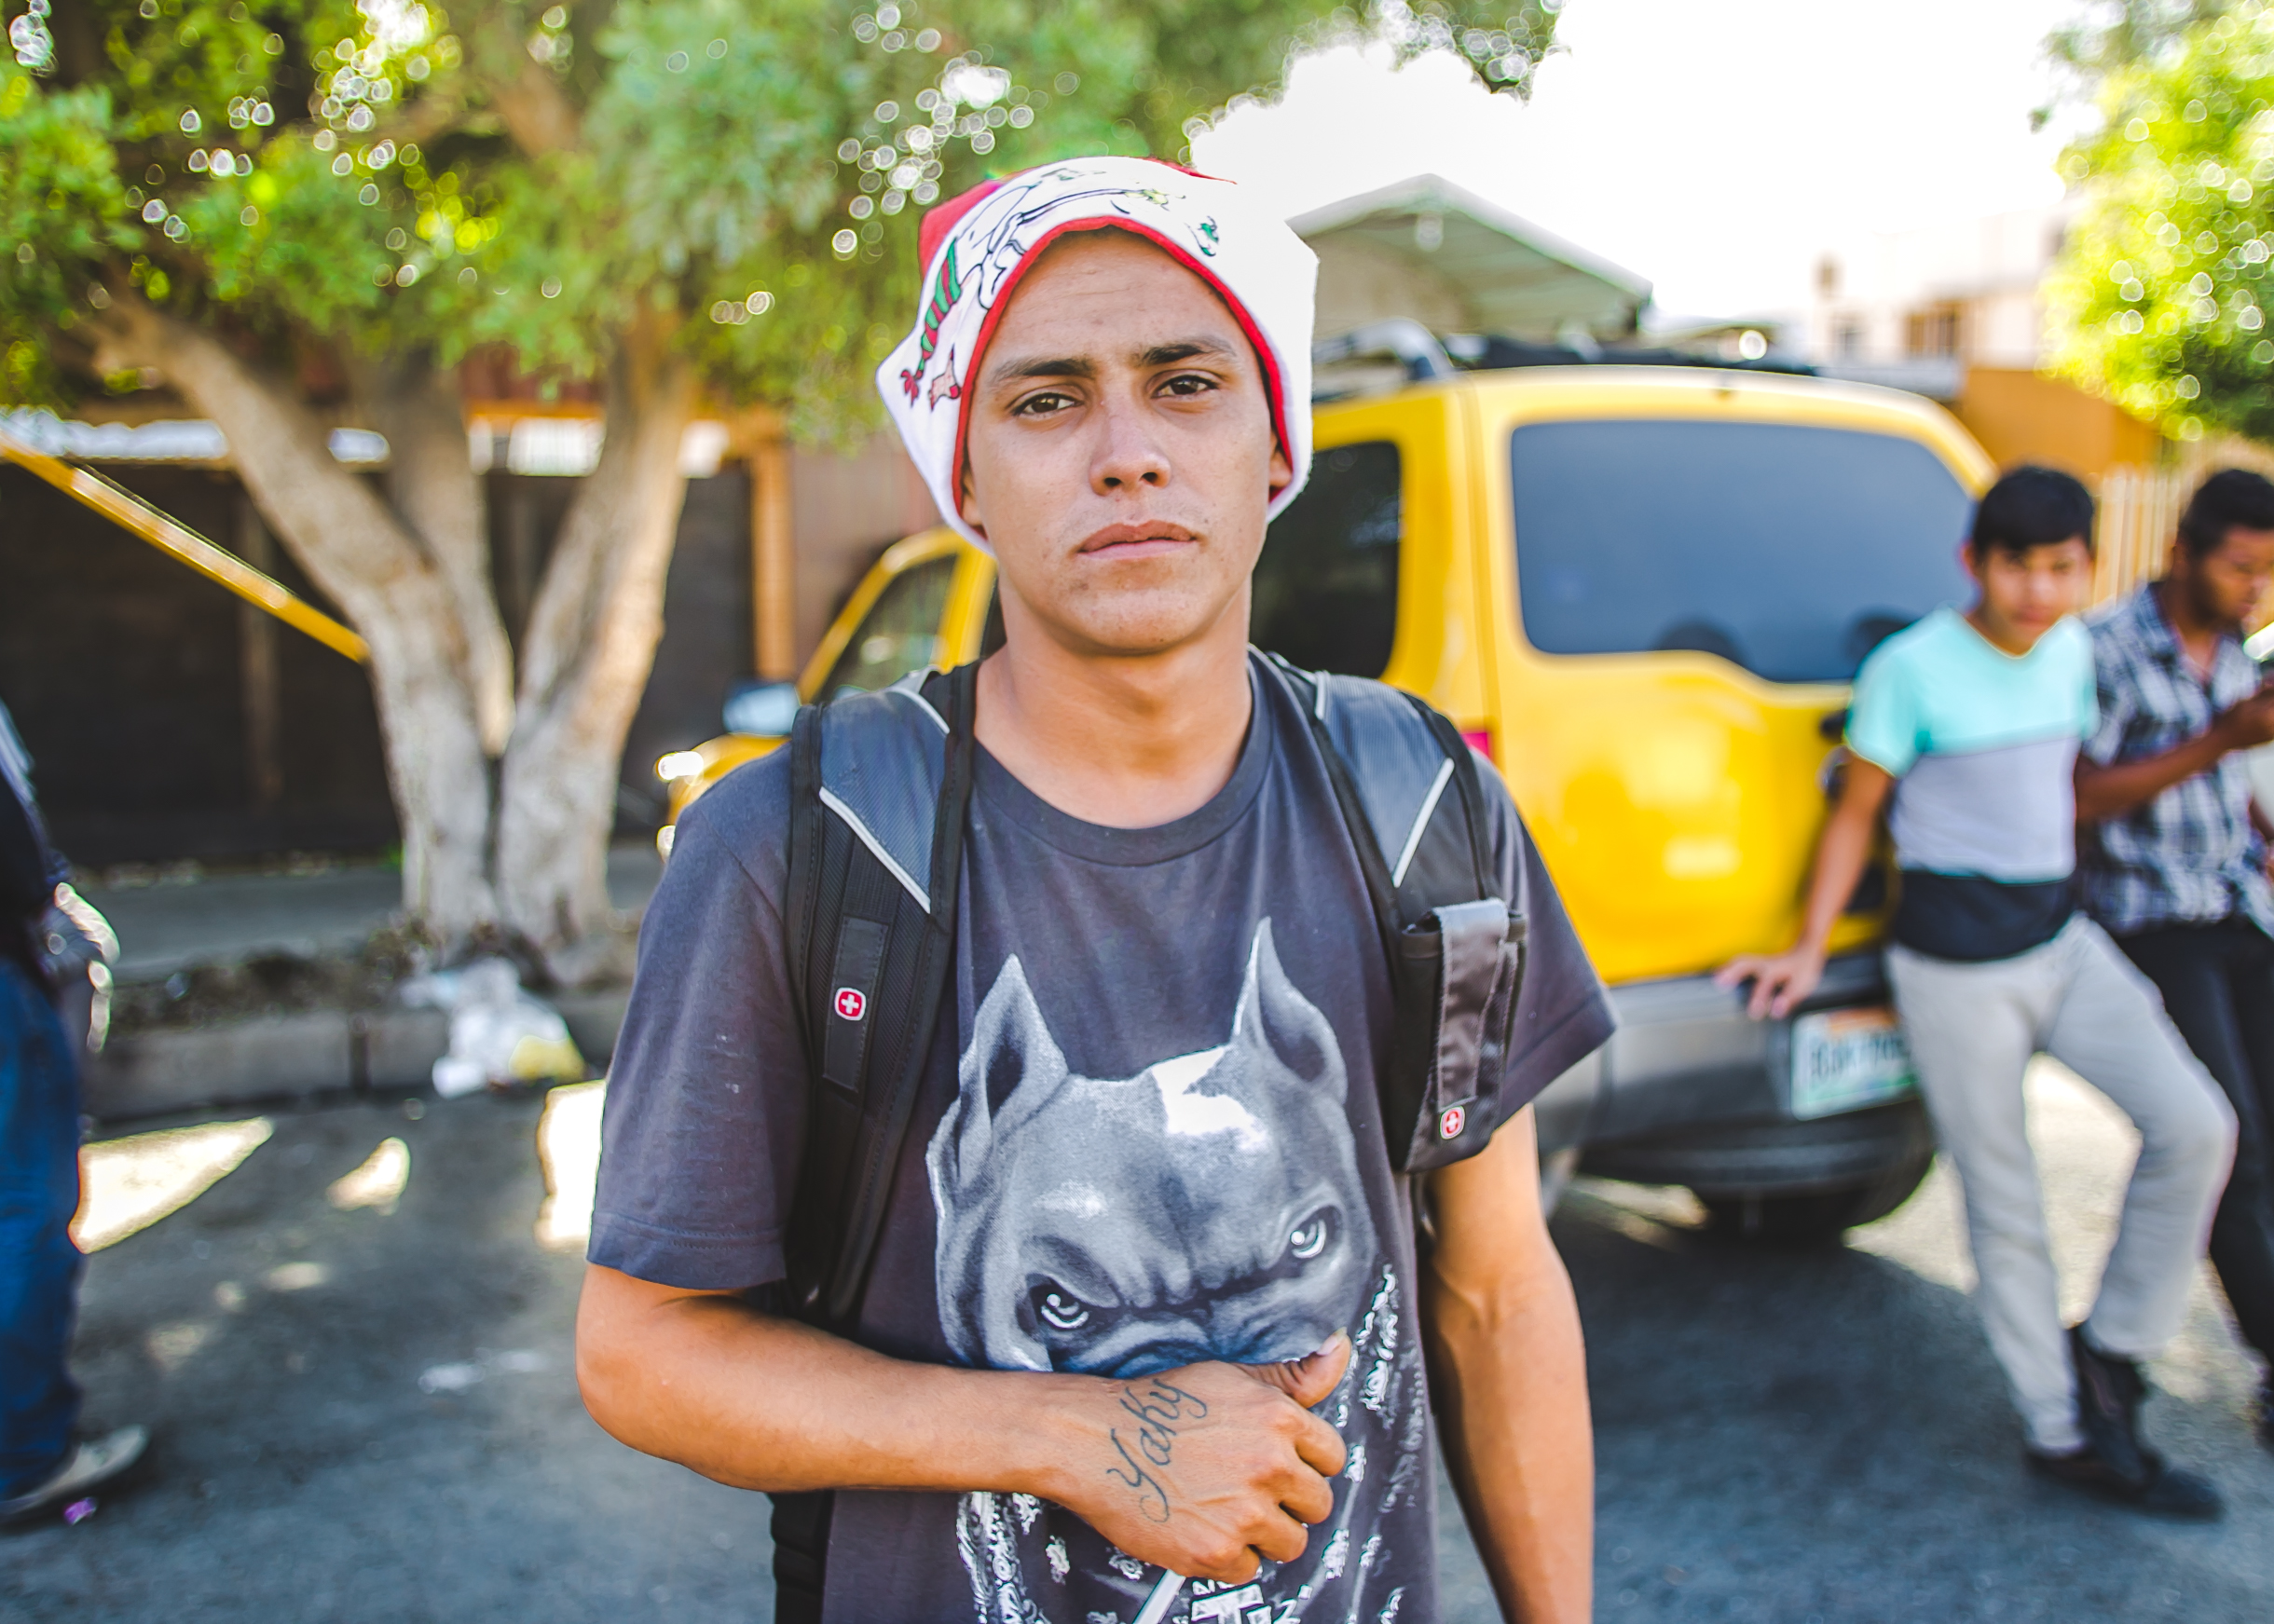 Heraldo Enrique, 19, of Honduras, stands wearing a Santa hat outside the El Chinchetta compound in Central Tijuana. Heraldo left Honduras to escape the pressure of joining a gang. He has been on the road alone for two months